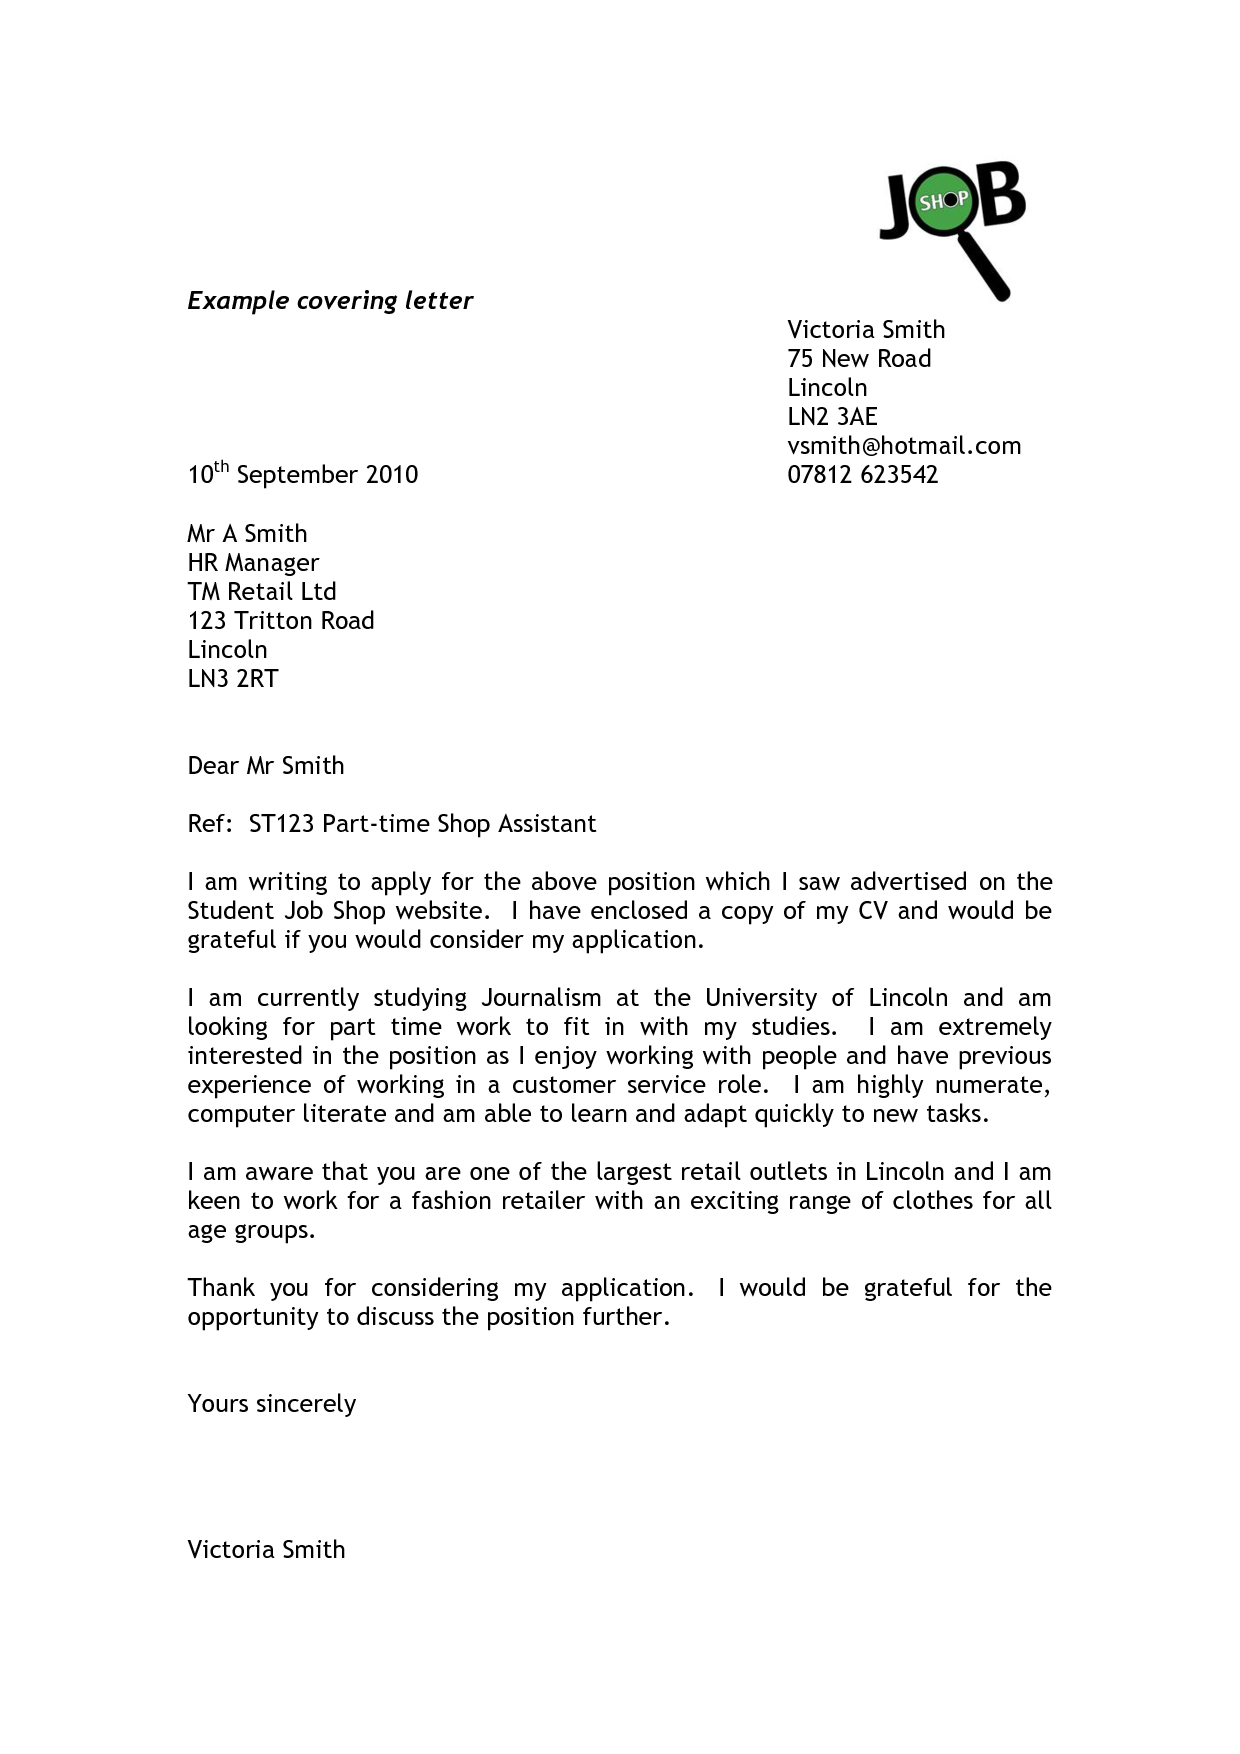 Dear Seller Letter Template - Cover Letter for Resume Sales Position Writing and Editingcover